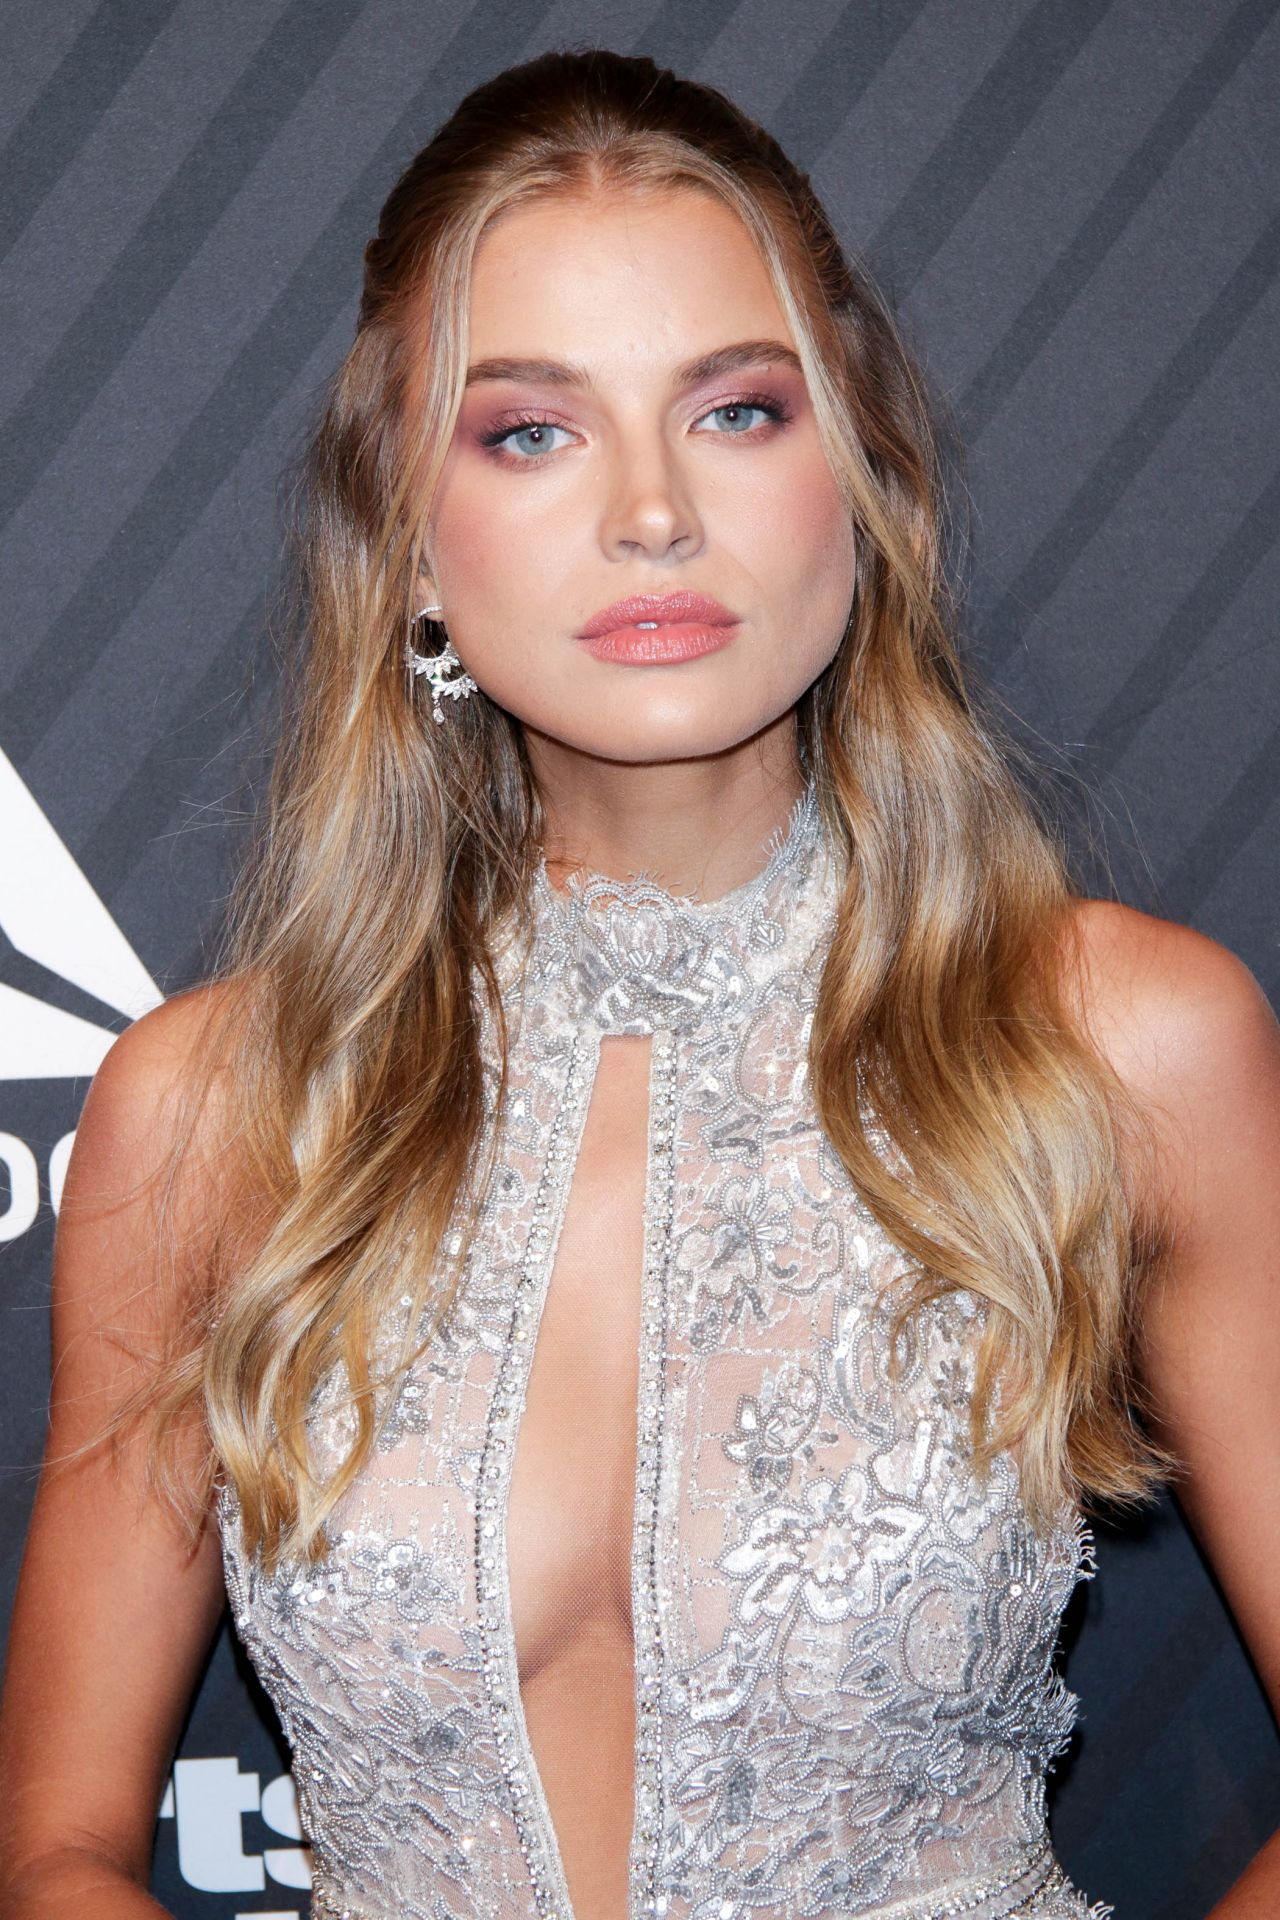 naked (42 photos), Cleavage Celebrites images